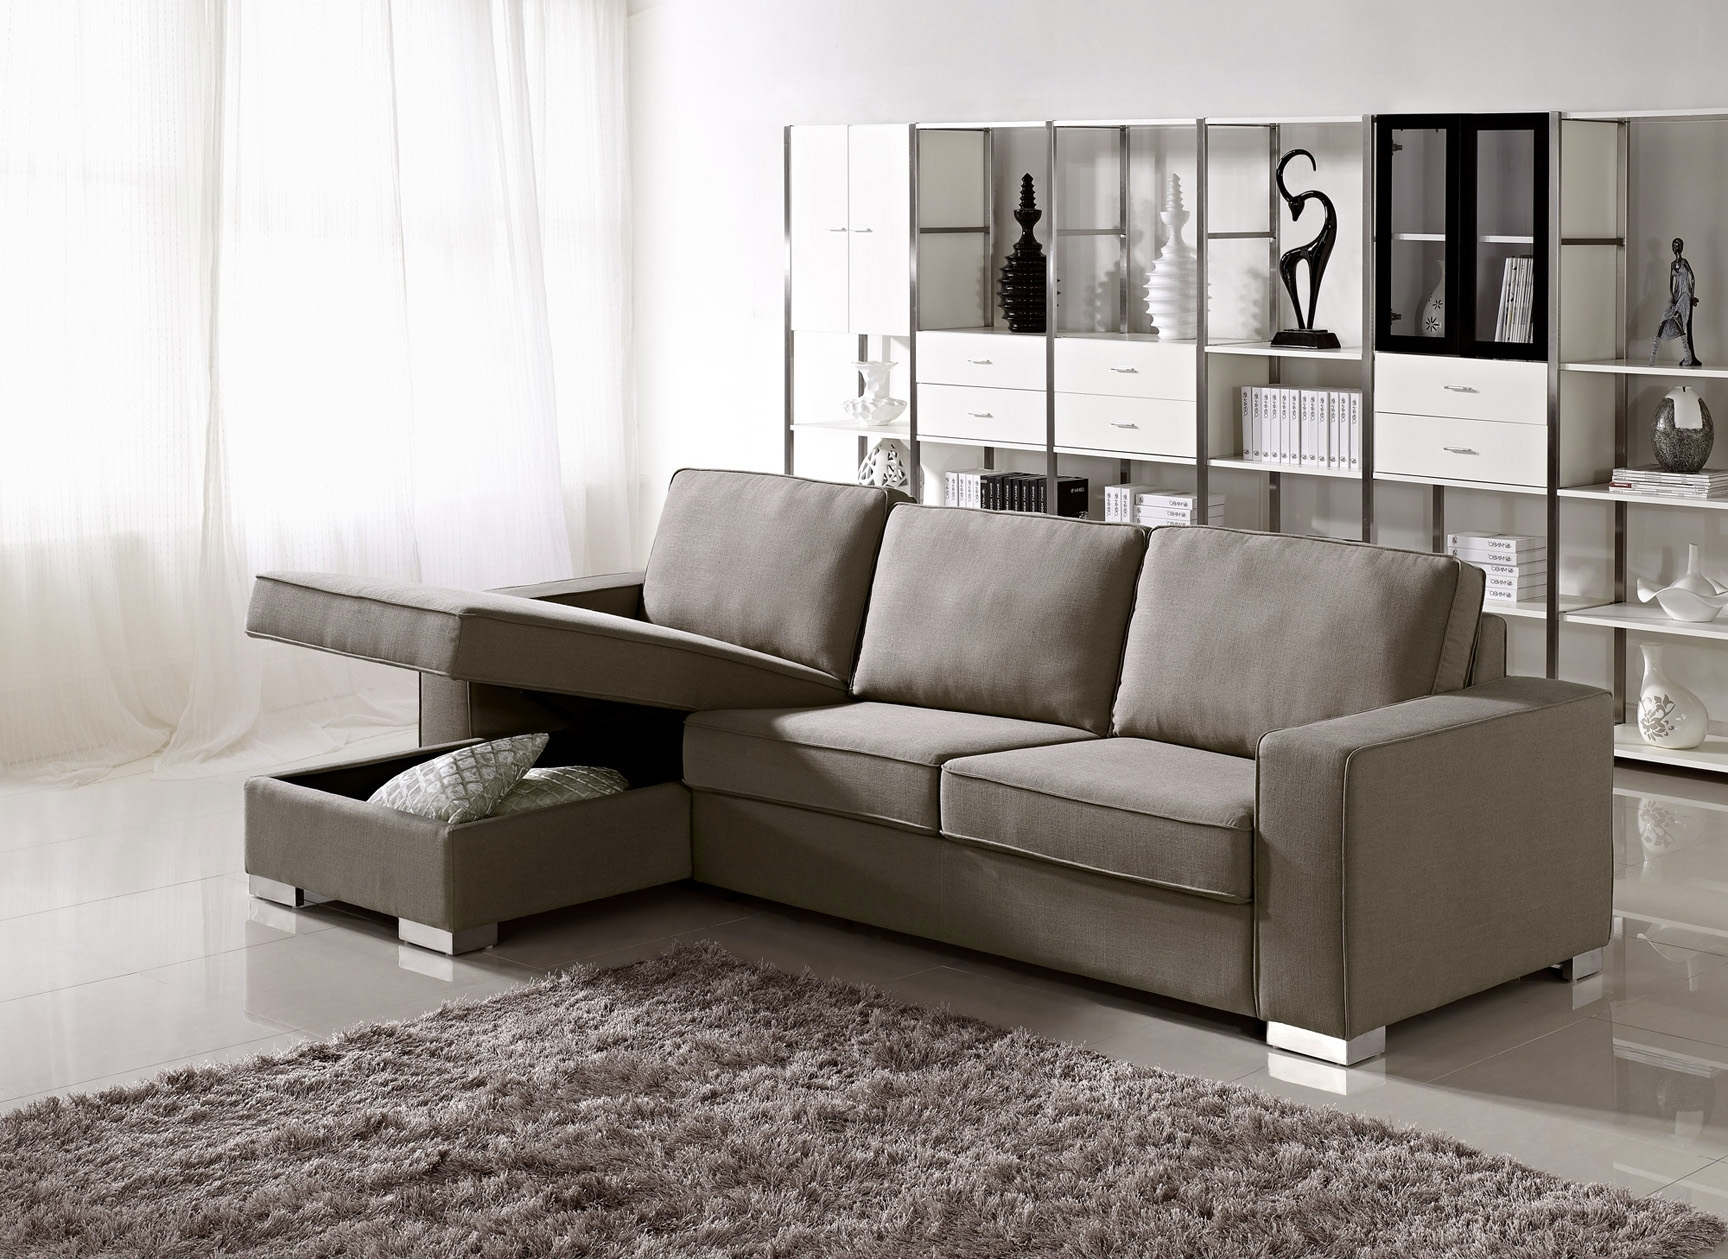 Widely Used Double Chaise Loveseat Small Sectional Sofa Bed Loveseat Chaise Intended For Small Couches With Chaise Lounge (View 15 of 15)